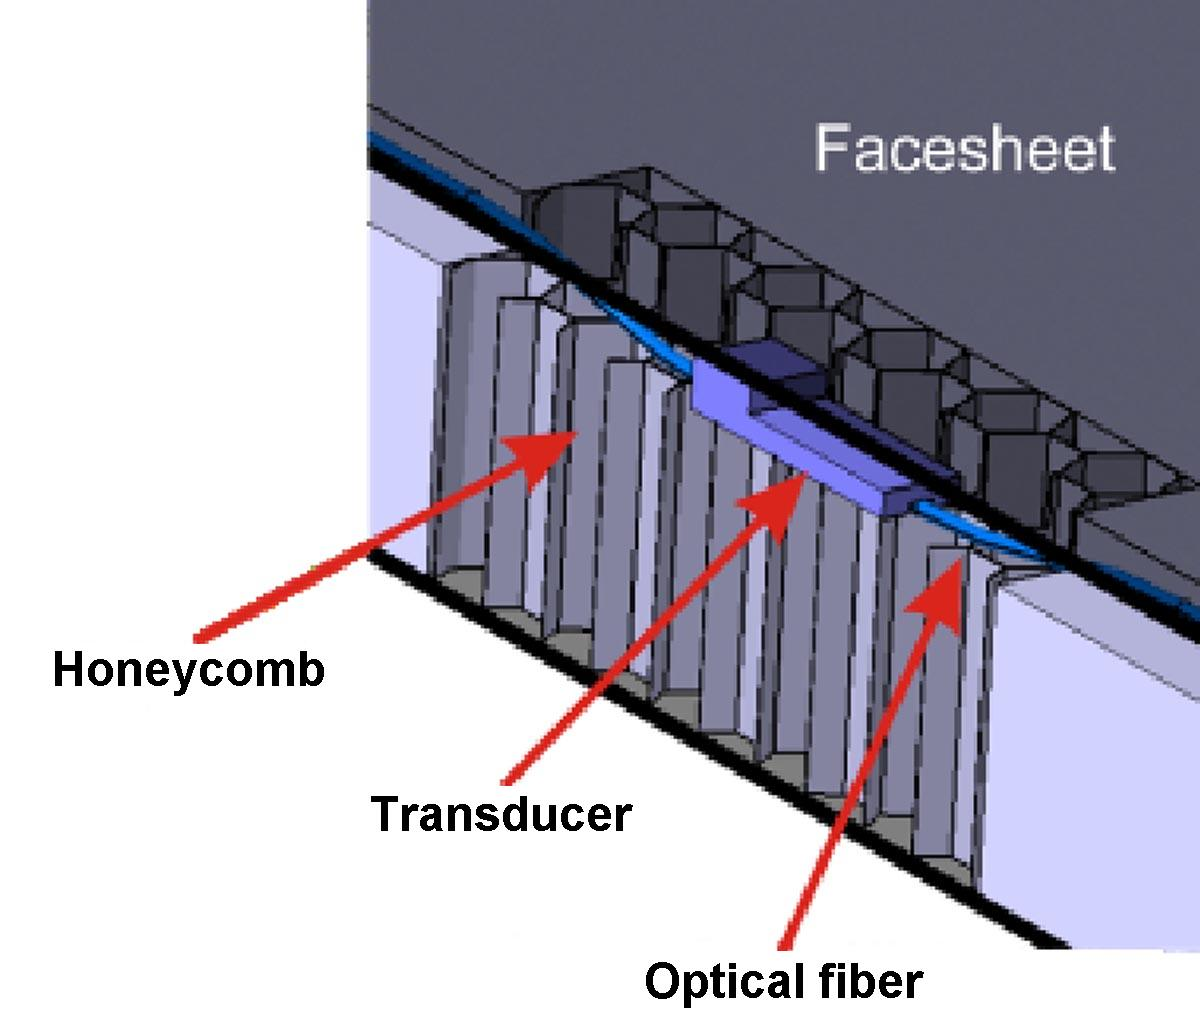 Fiber Optics Diagram Optical Link Sensor Networks In Smart Structures Spie Homepage 3d Model Of A Optic Temperature Integrated Between The Face Sheet And Core Sandwich Panel